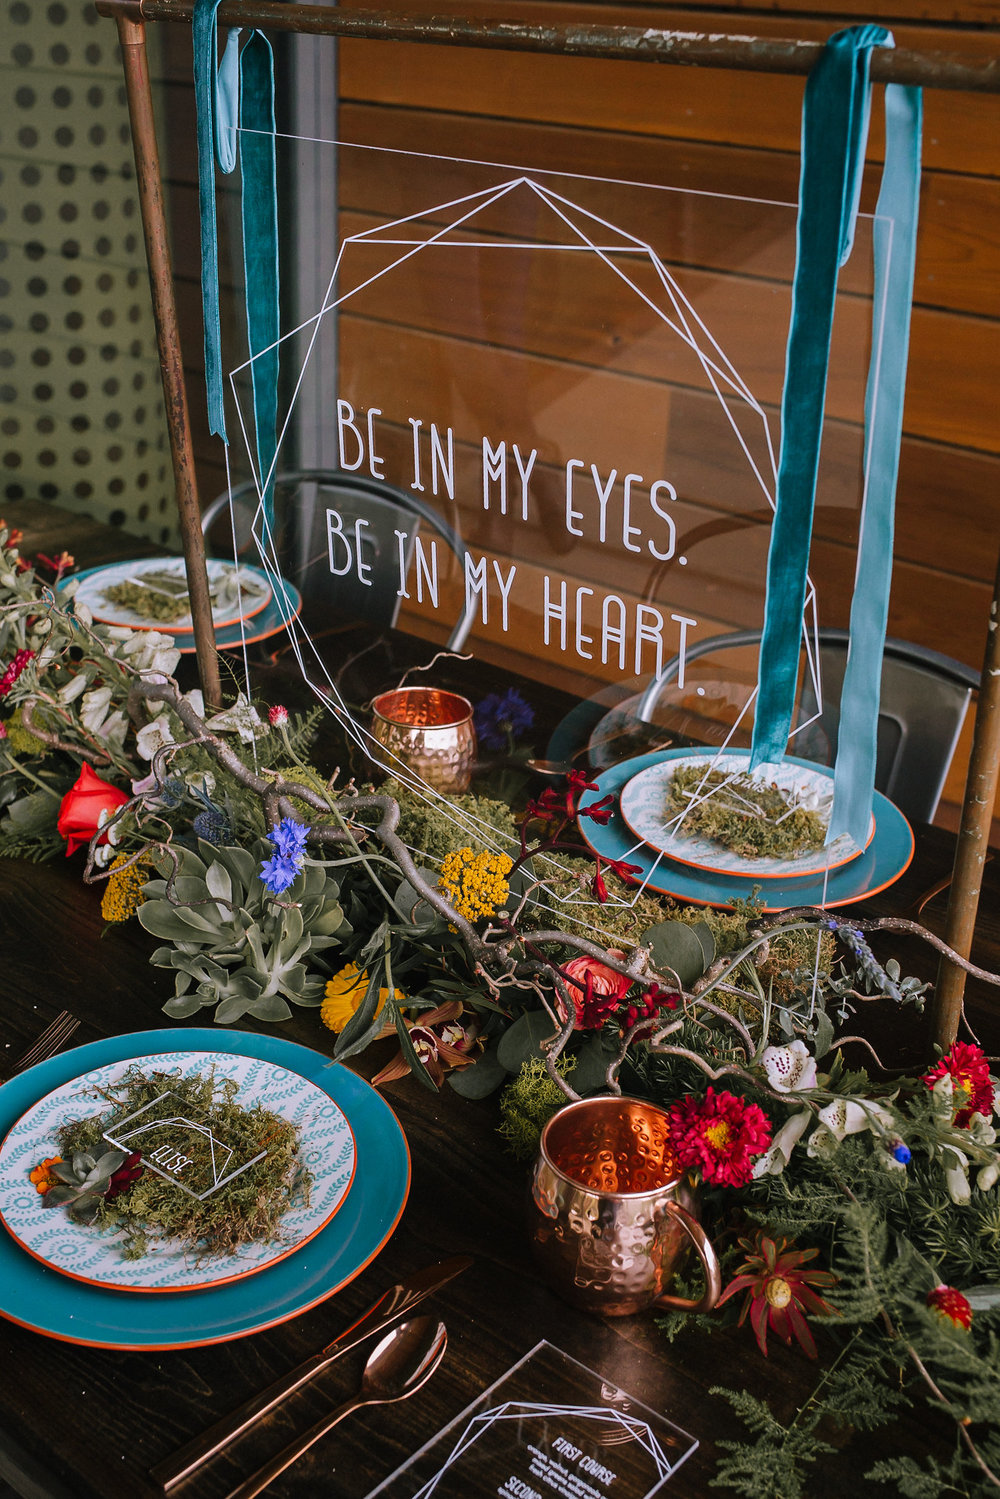 """Be in my eyes, be in my heart"" sign from The Lumineers created by Purple Wagon Designs on acrylc."